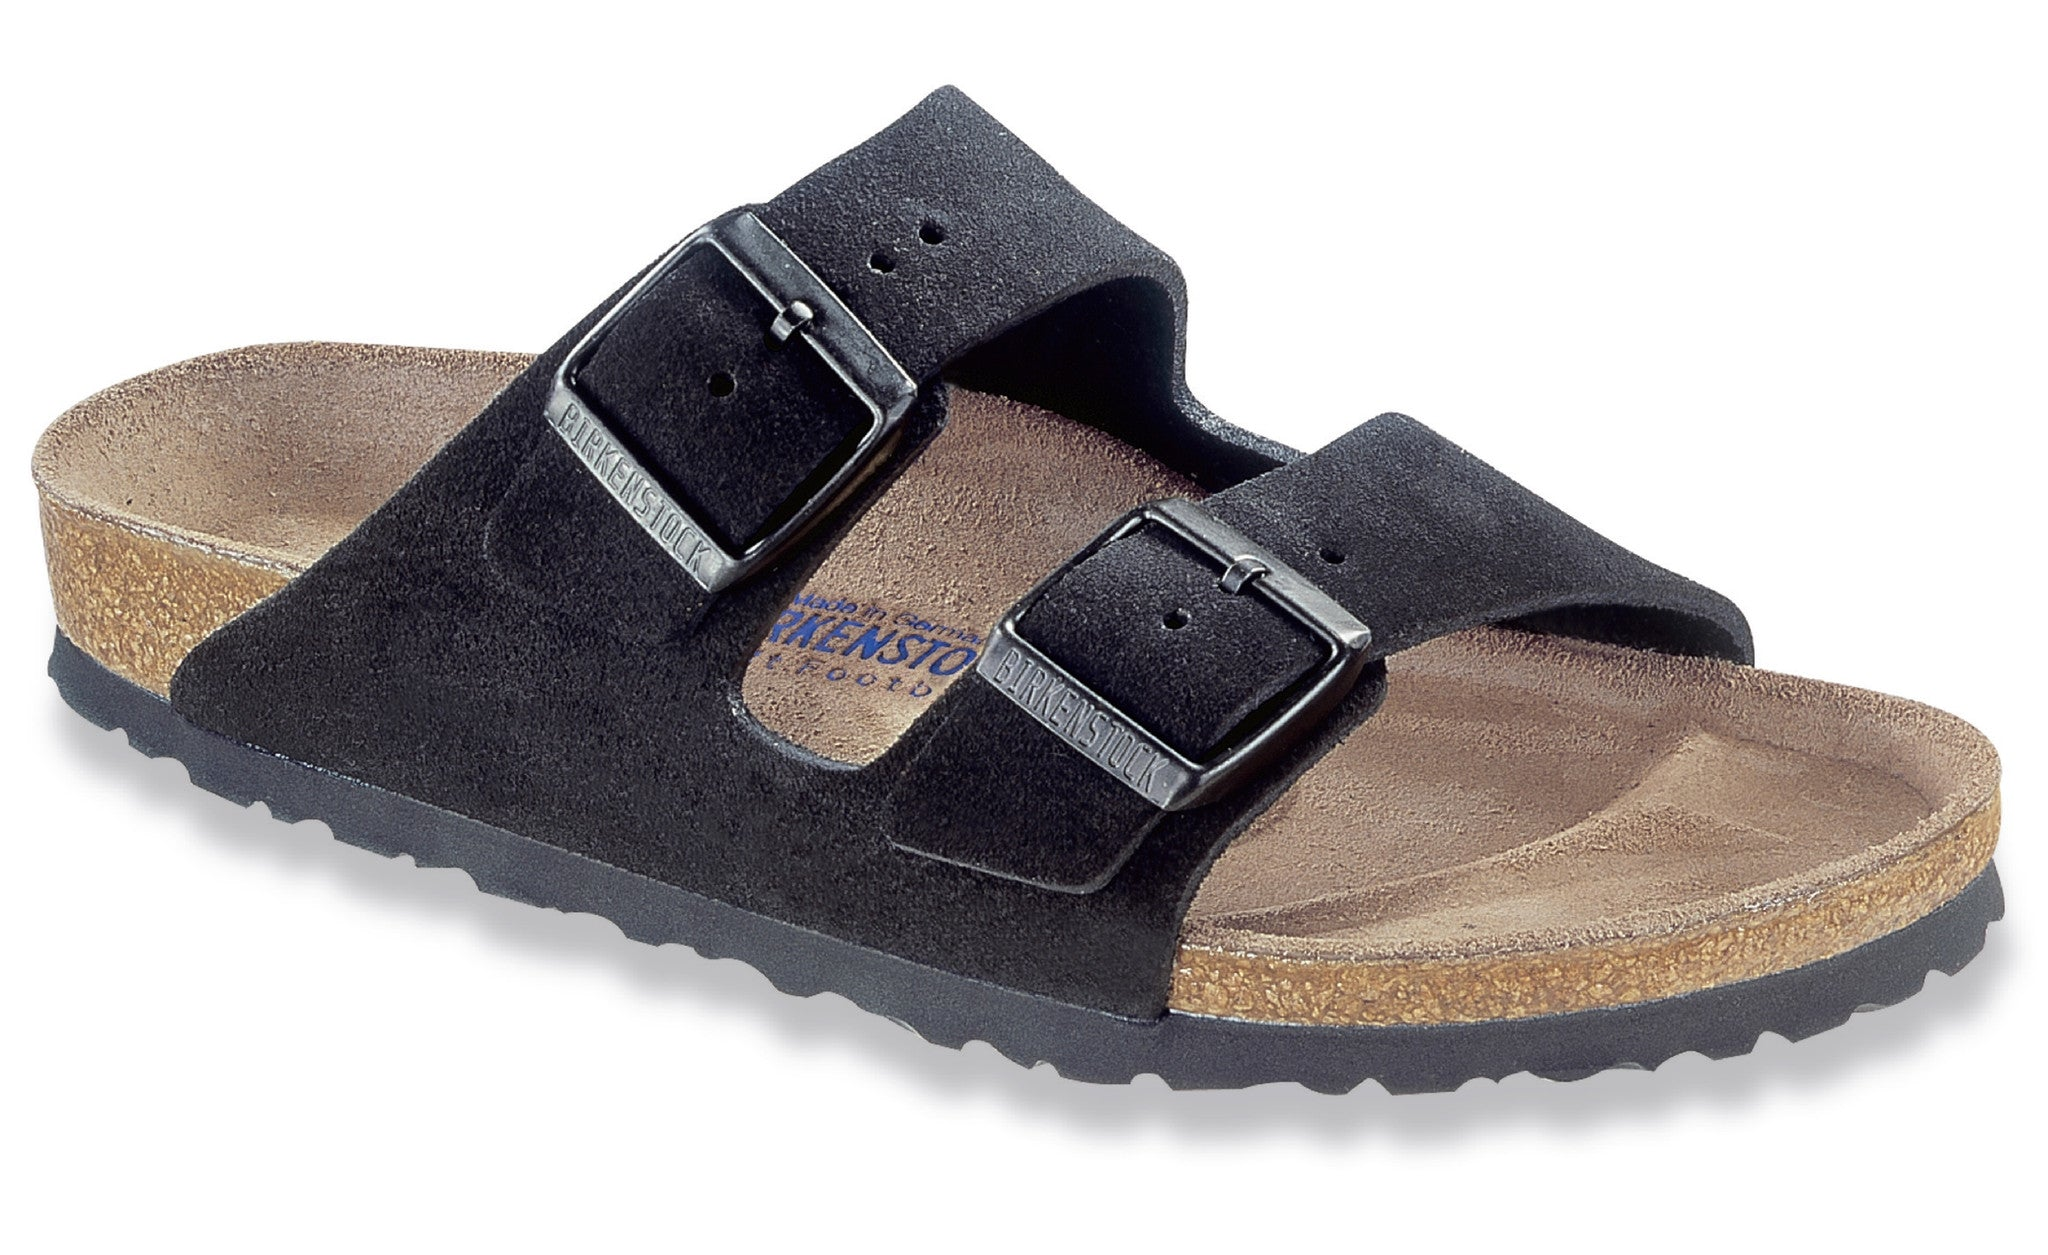 205181cfdf5 Birkenstock Men s Arizona Black Suede Soft Footbed Regular – Welcome to  Footprint27.com